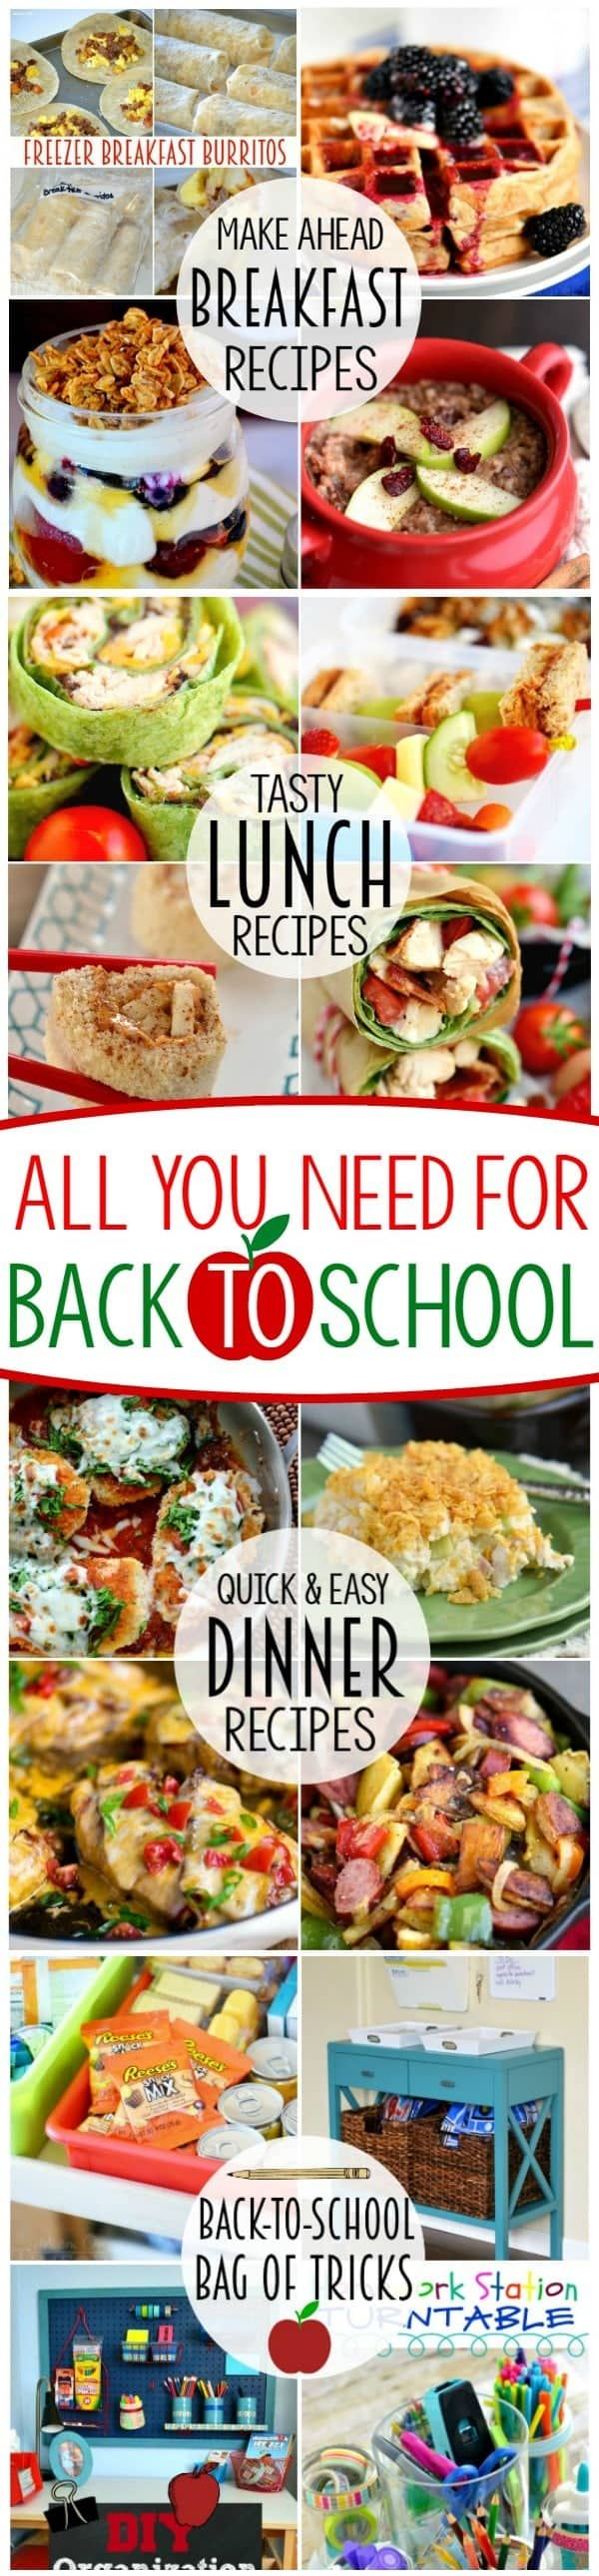 Back To School Mom Hacks! Meals prep (consider doing them with your kids) and organization tricks to get everything ready for school